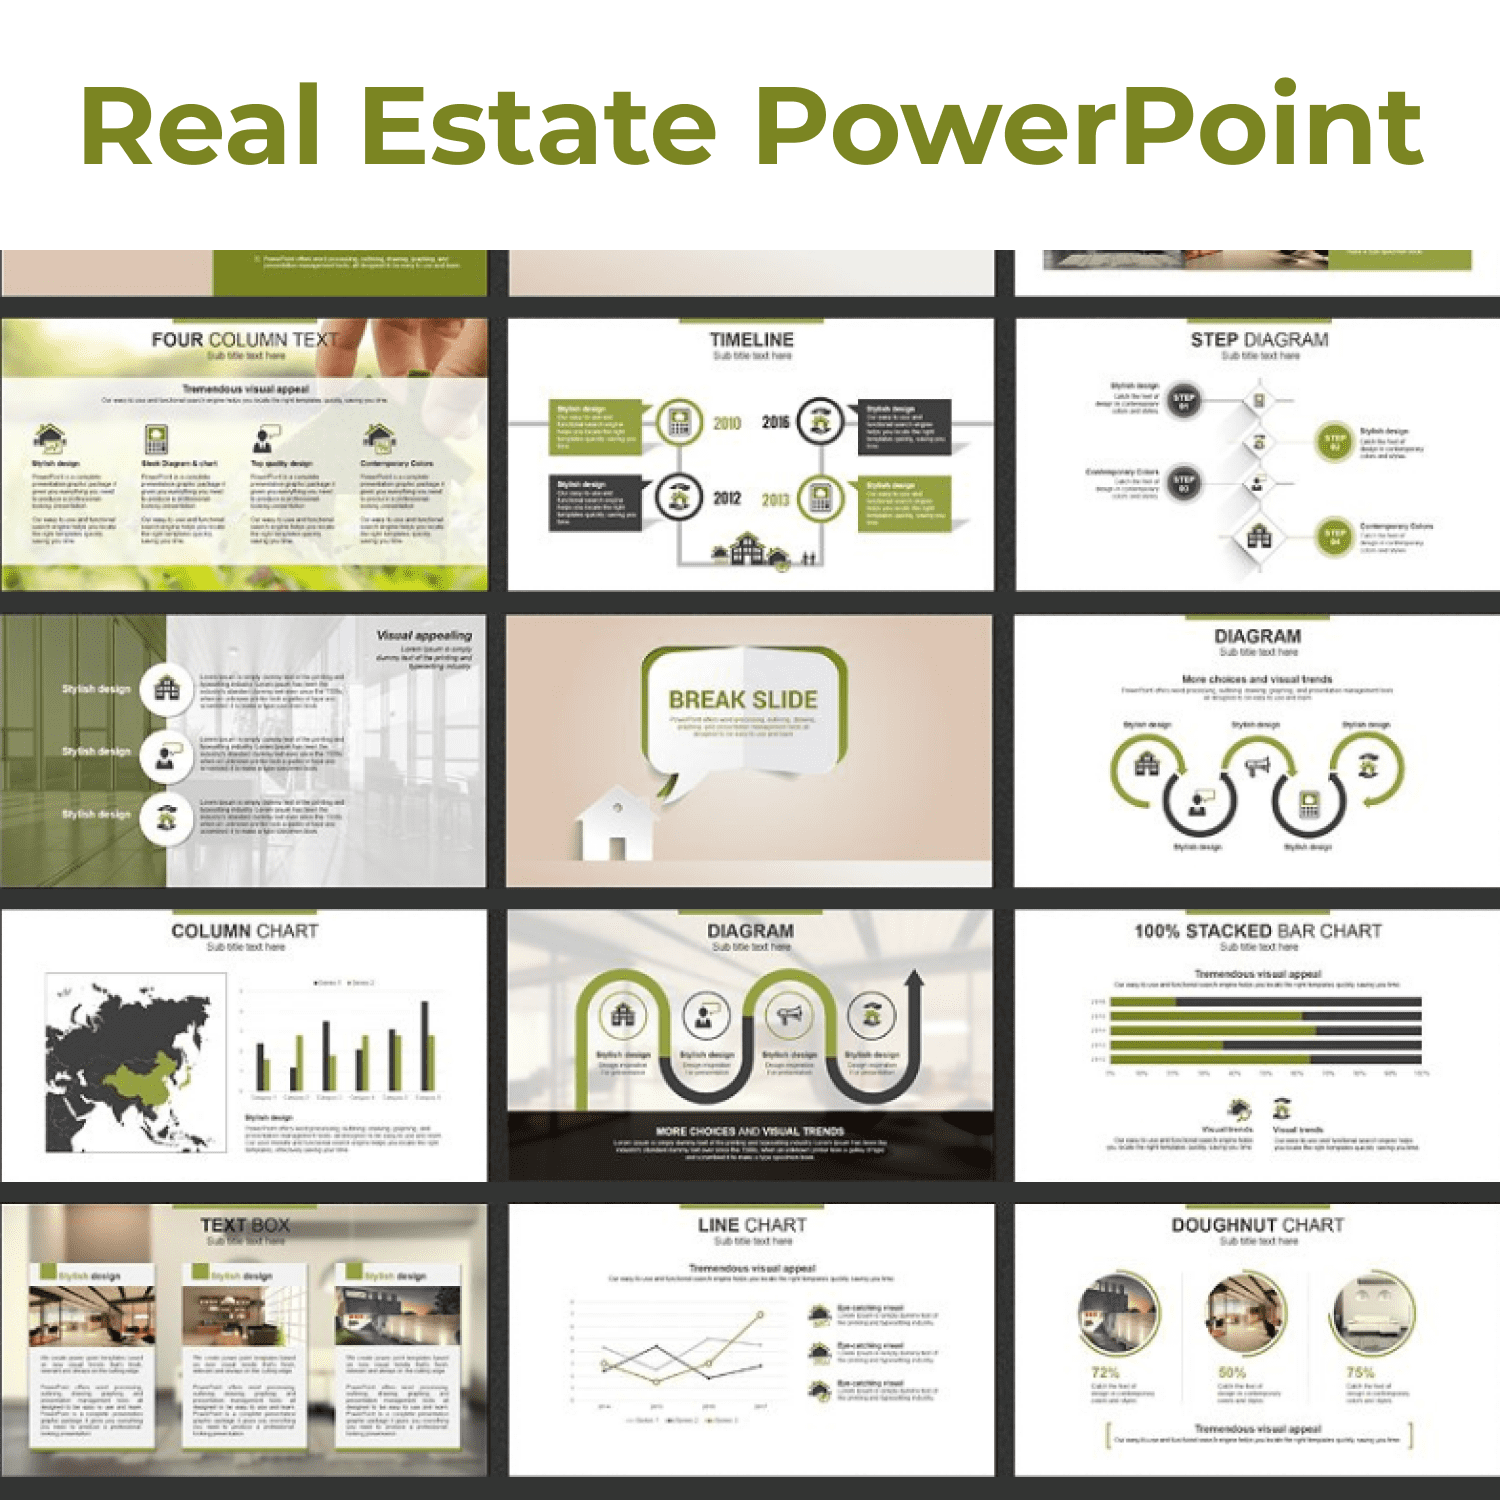 Real Estate PowerPoint Template by MasterBundles Collage Image.